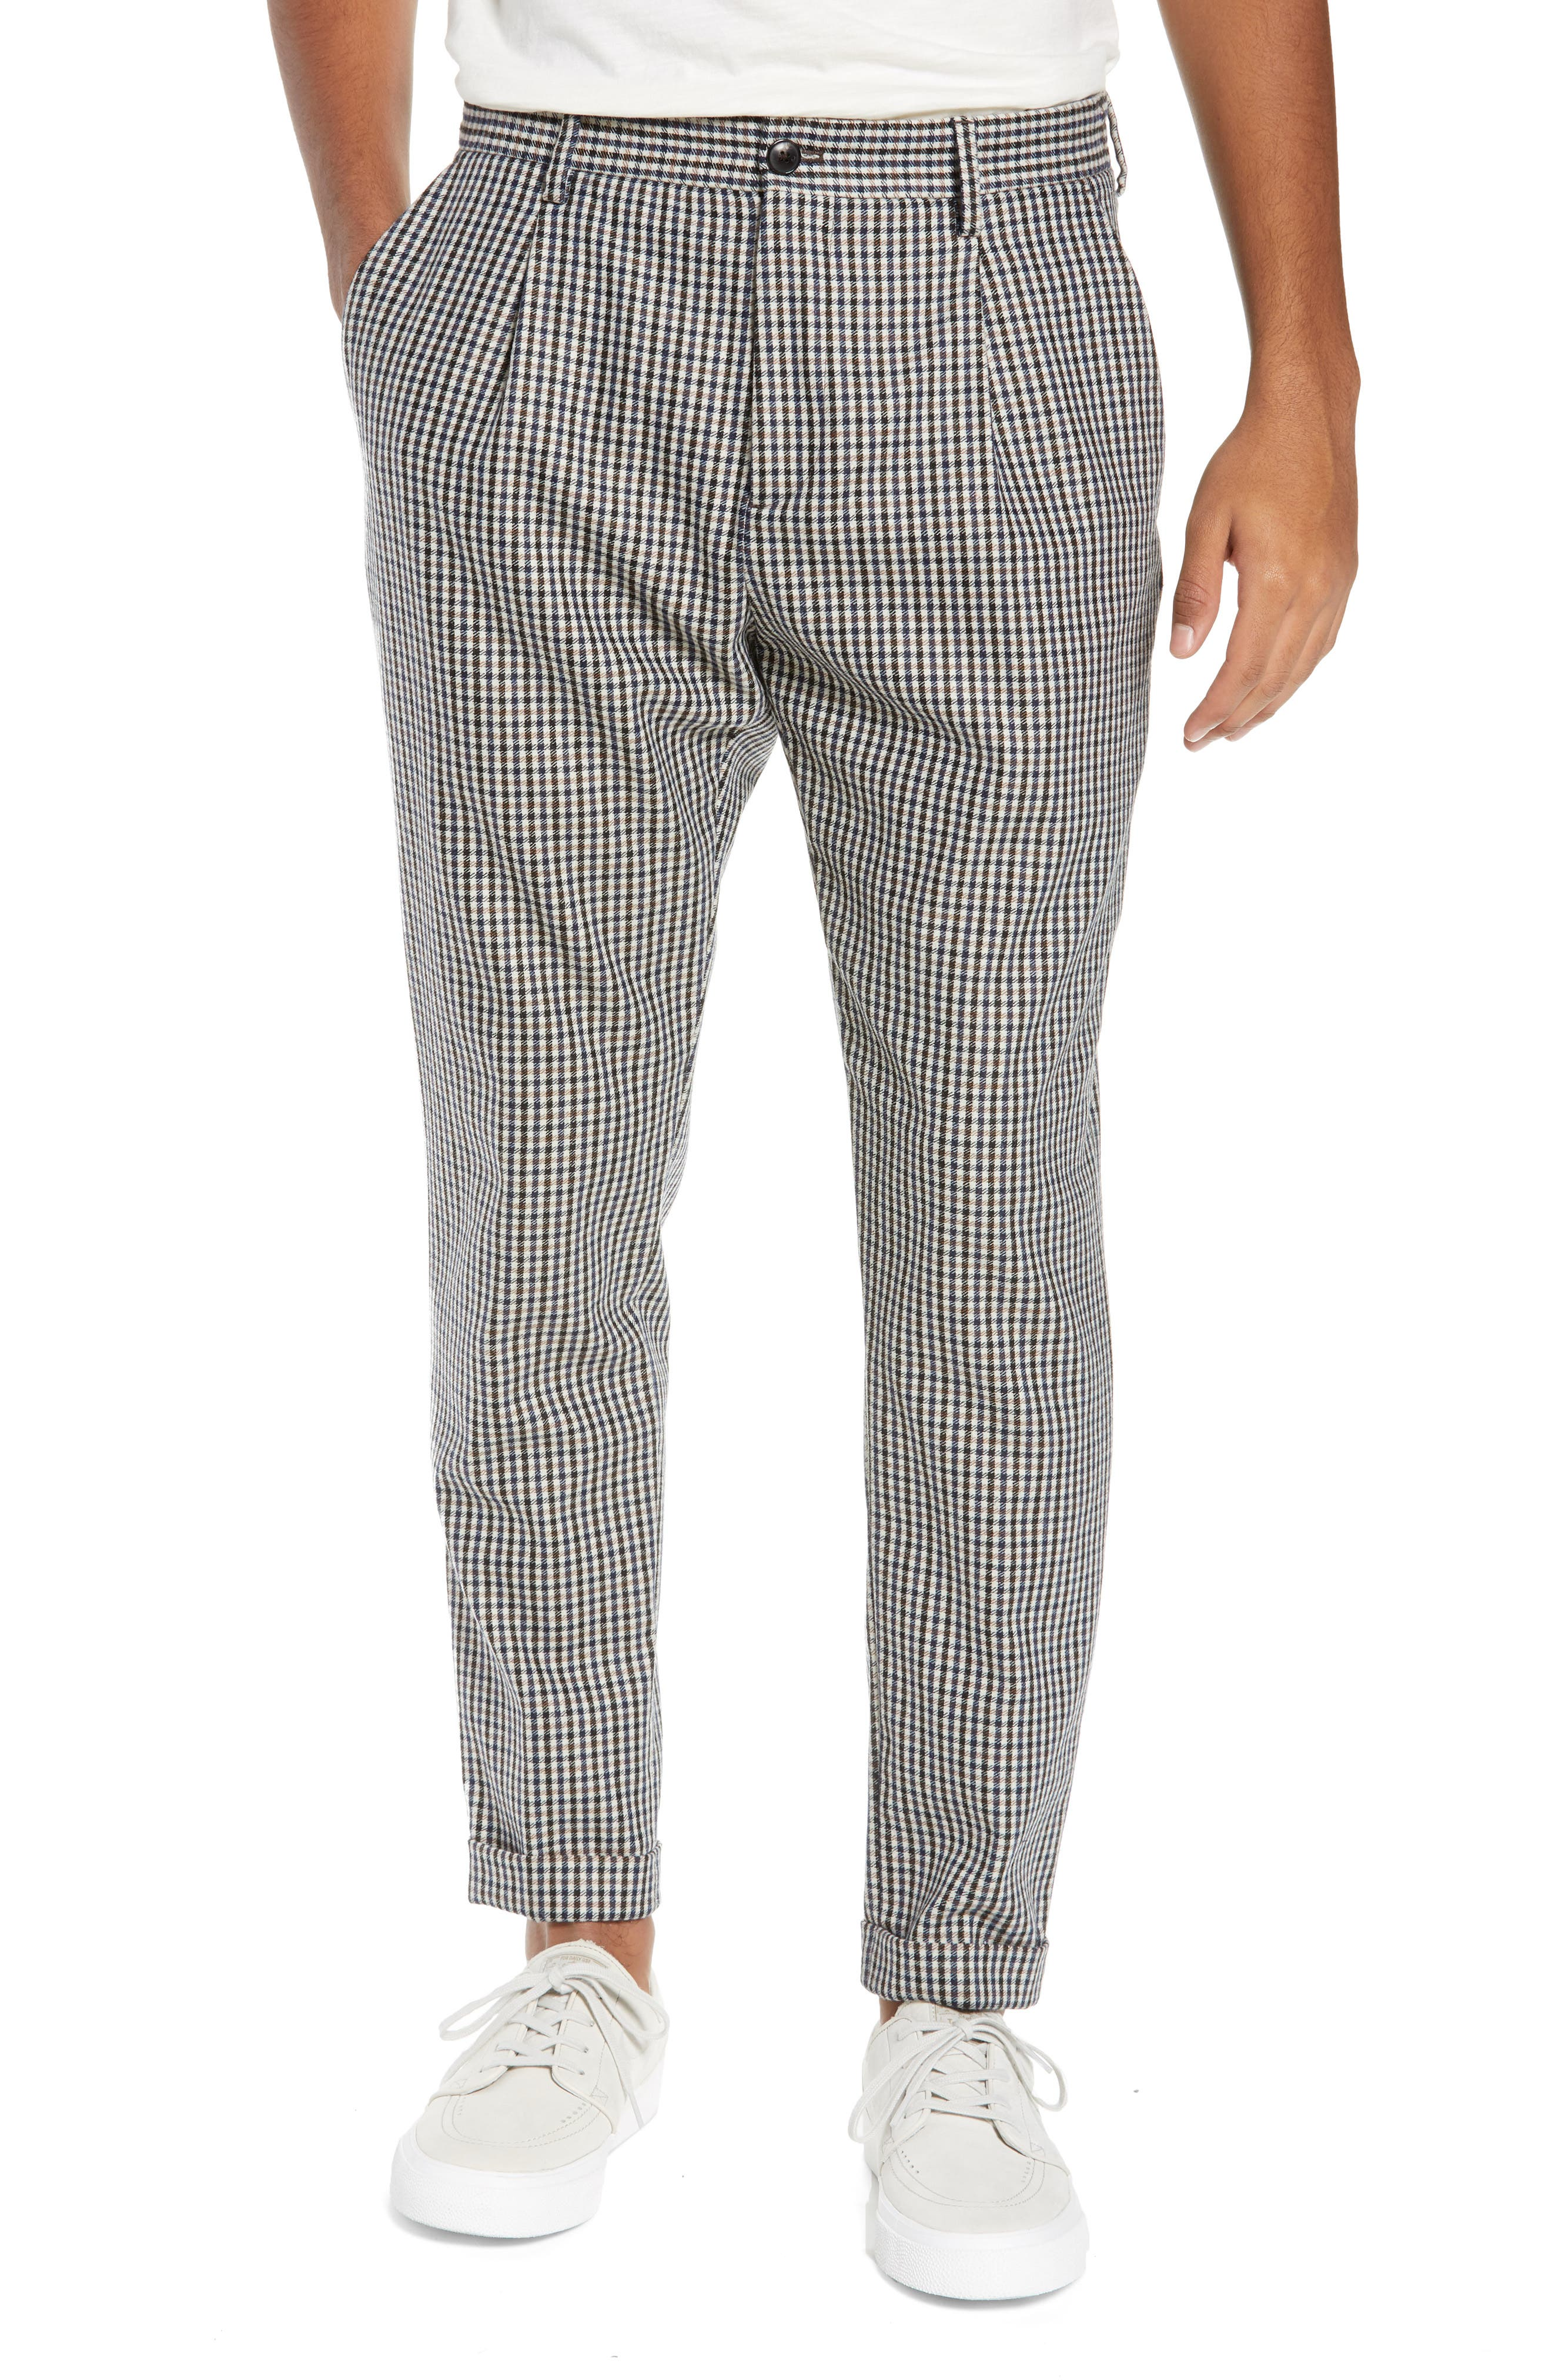 Blake Slim Fit Stripe Trousers,                         Main,                         color, COMBO A